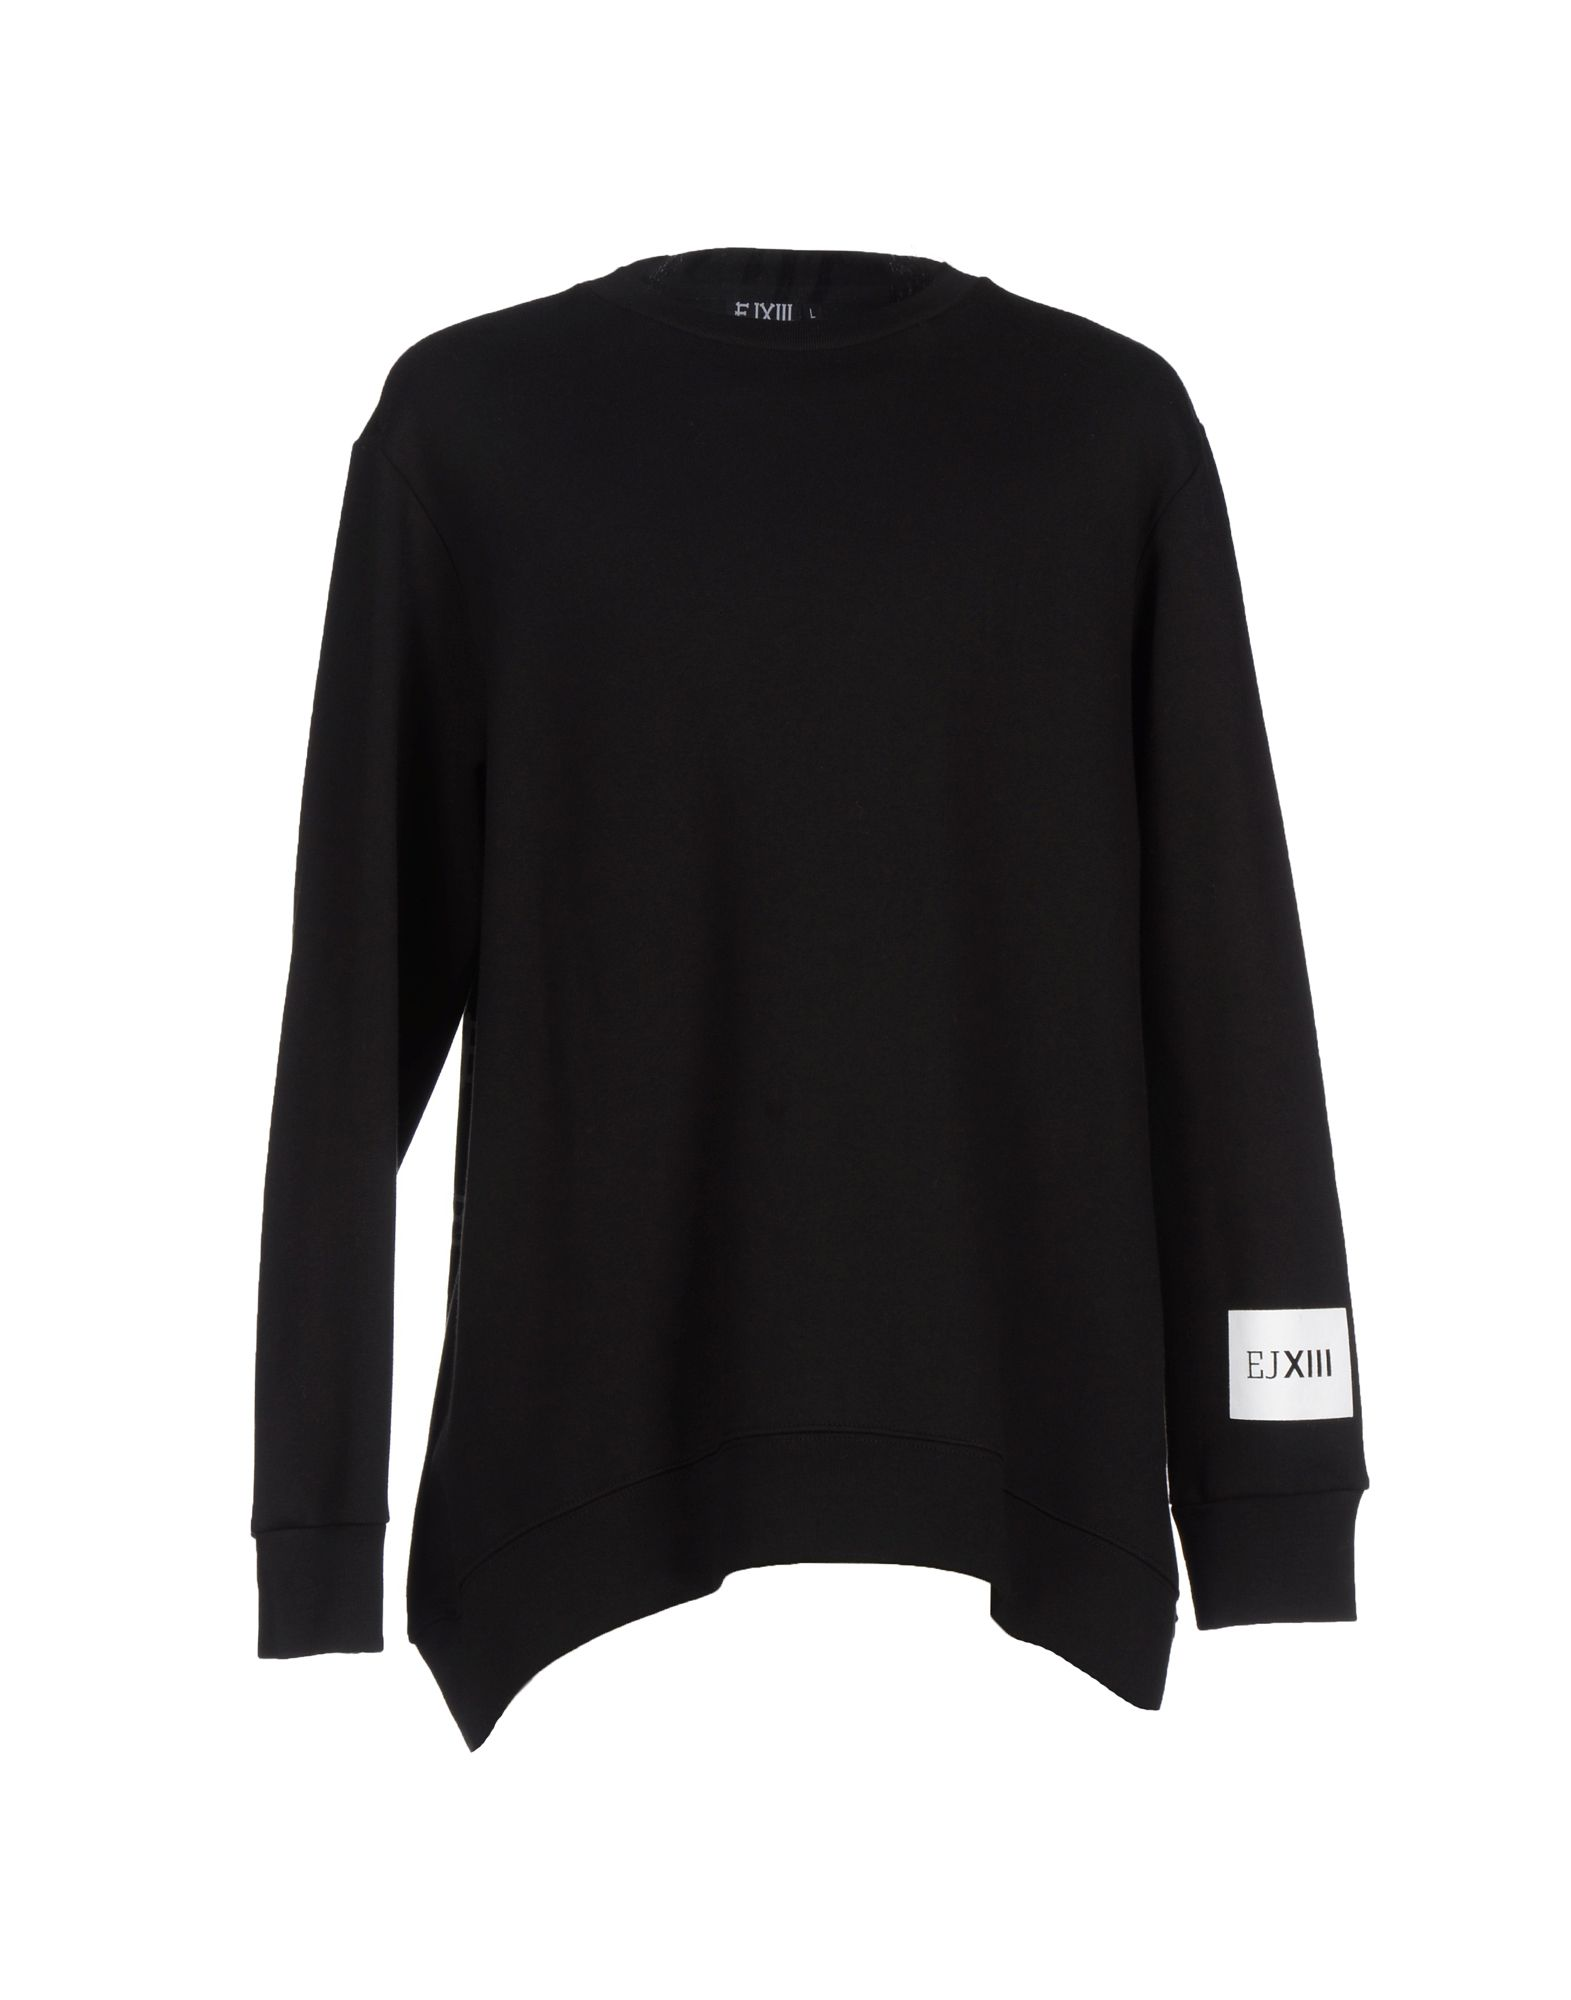 EJXIII Sweatshirt in Black